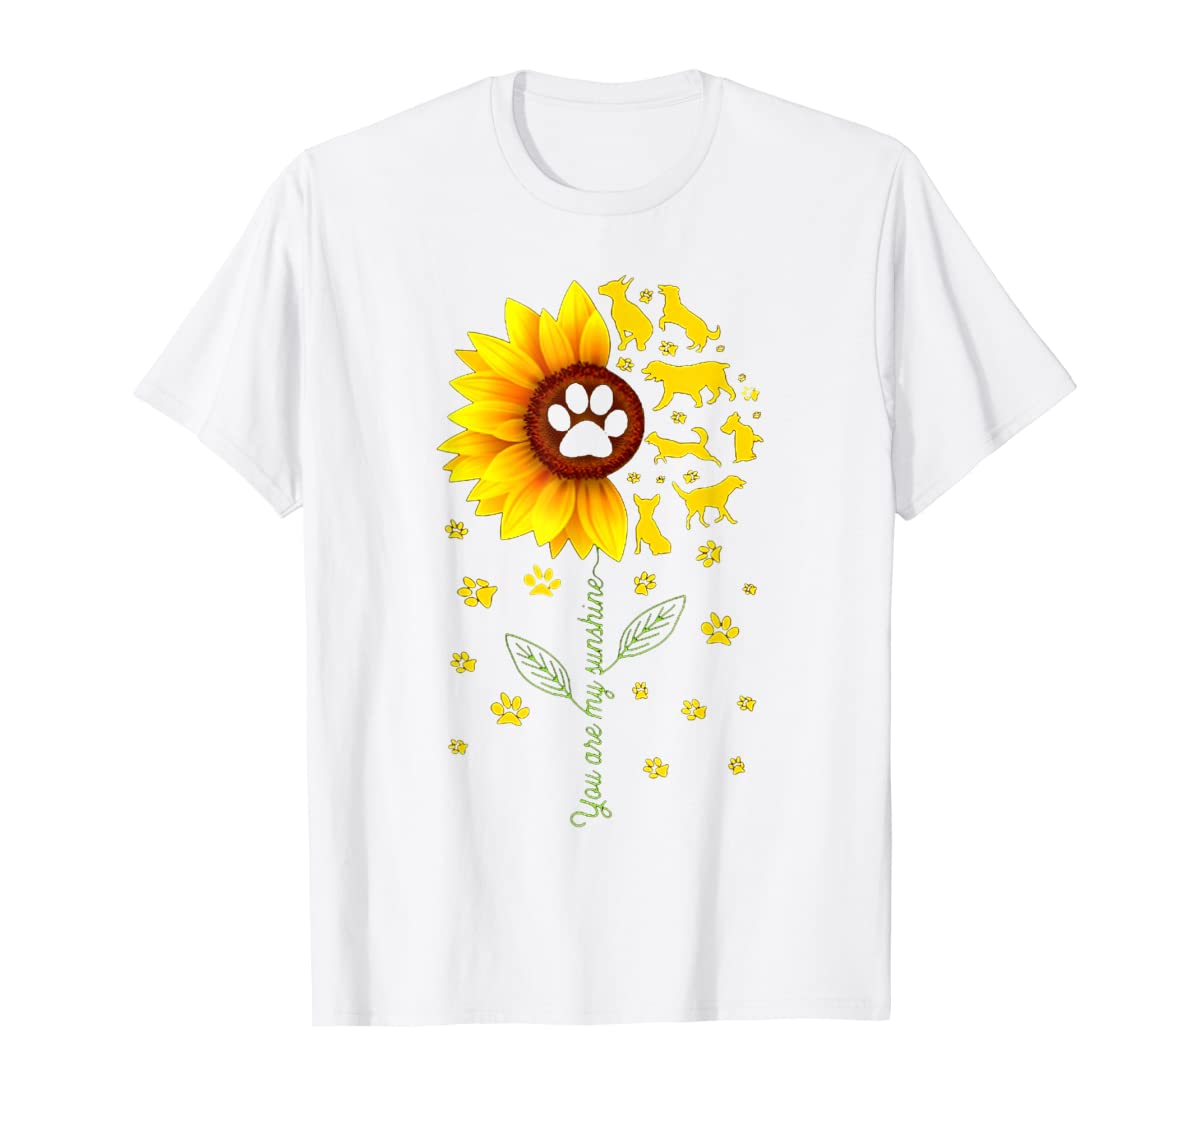 You are my Sunshine t-shirt-Men's T-Shirt-White